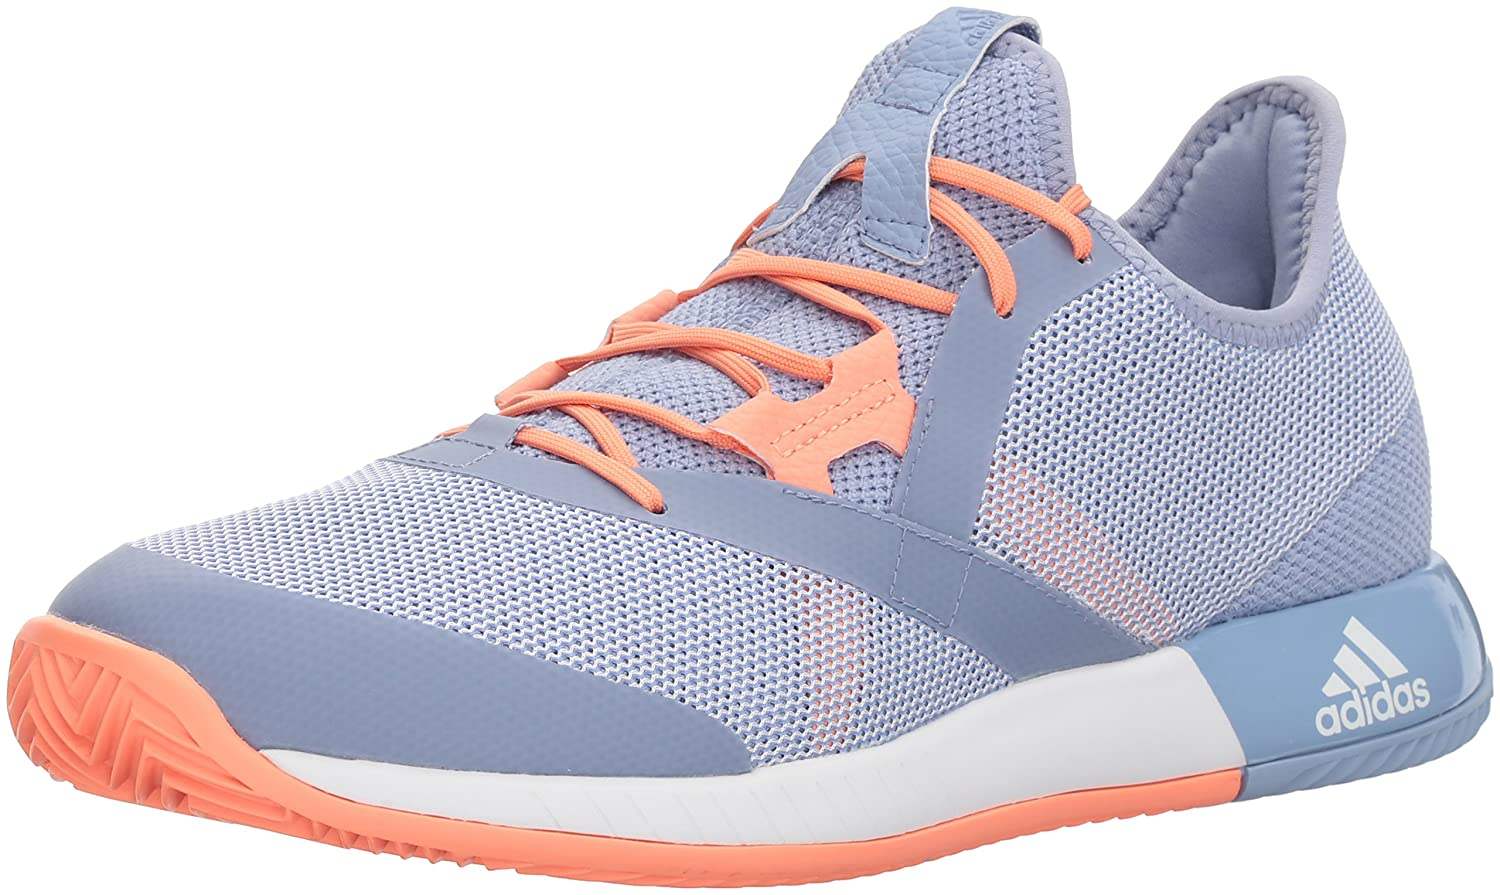 adidas Women's Adizero Defiant Bounce W Tennis Shoe B0725QC66H 10.5 B(M) US|Chalk Blue/White/Chalk Coral